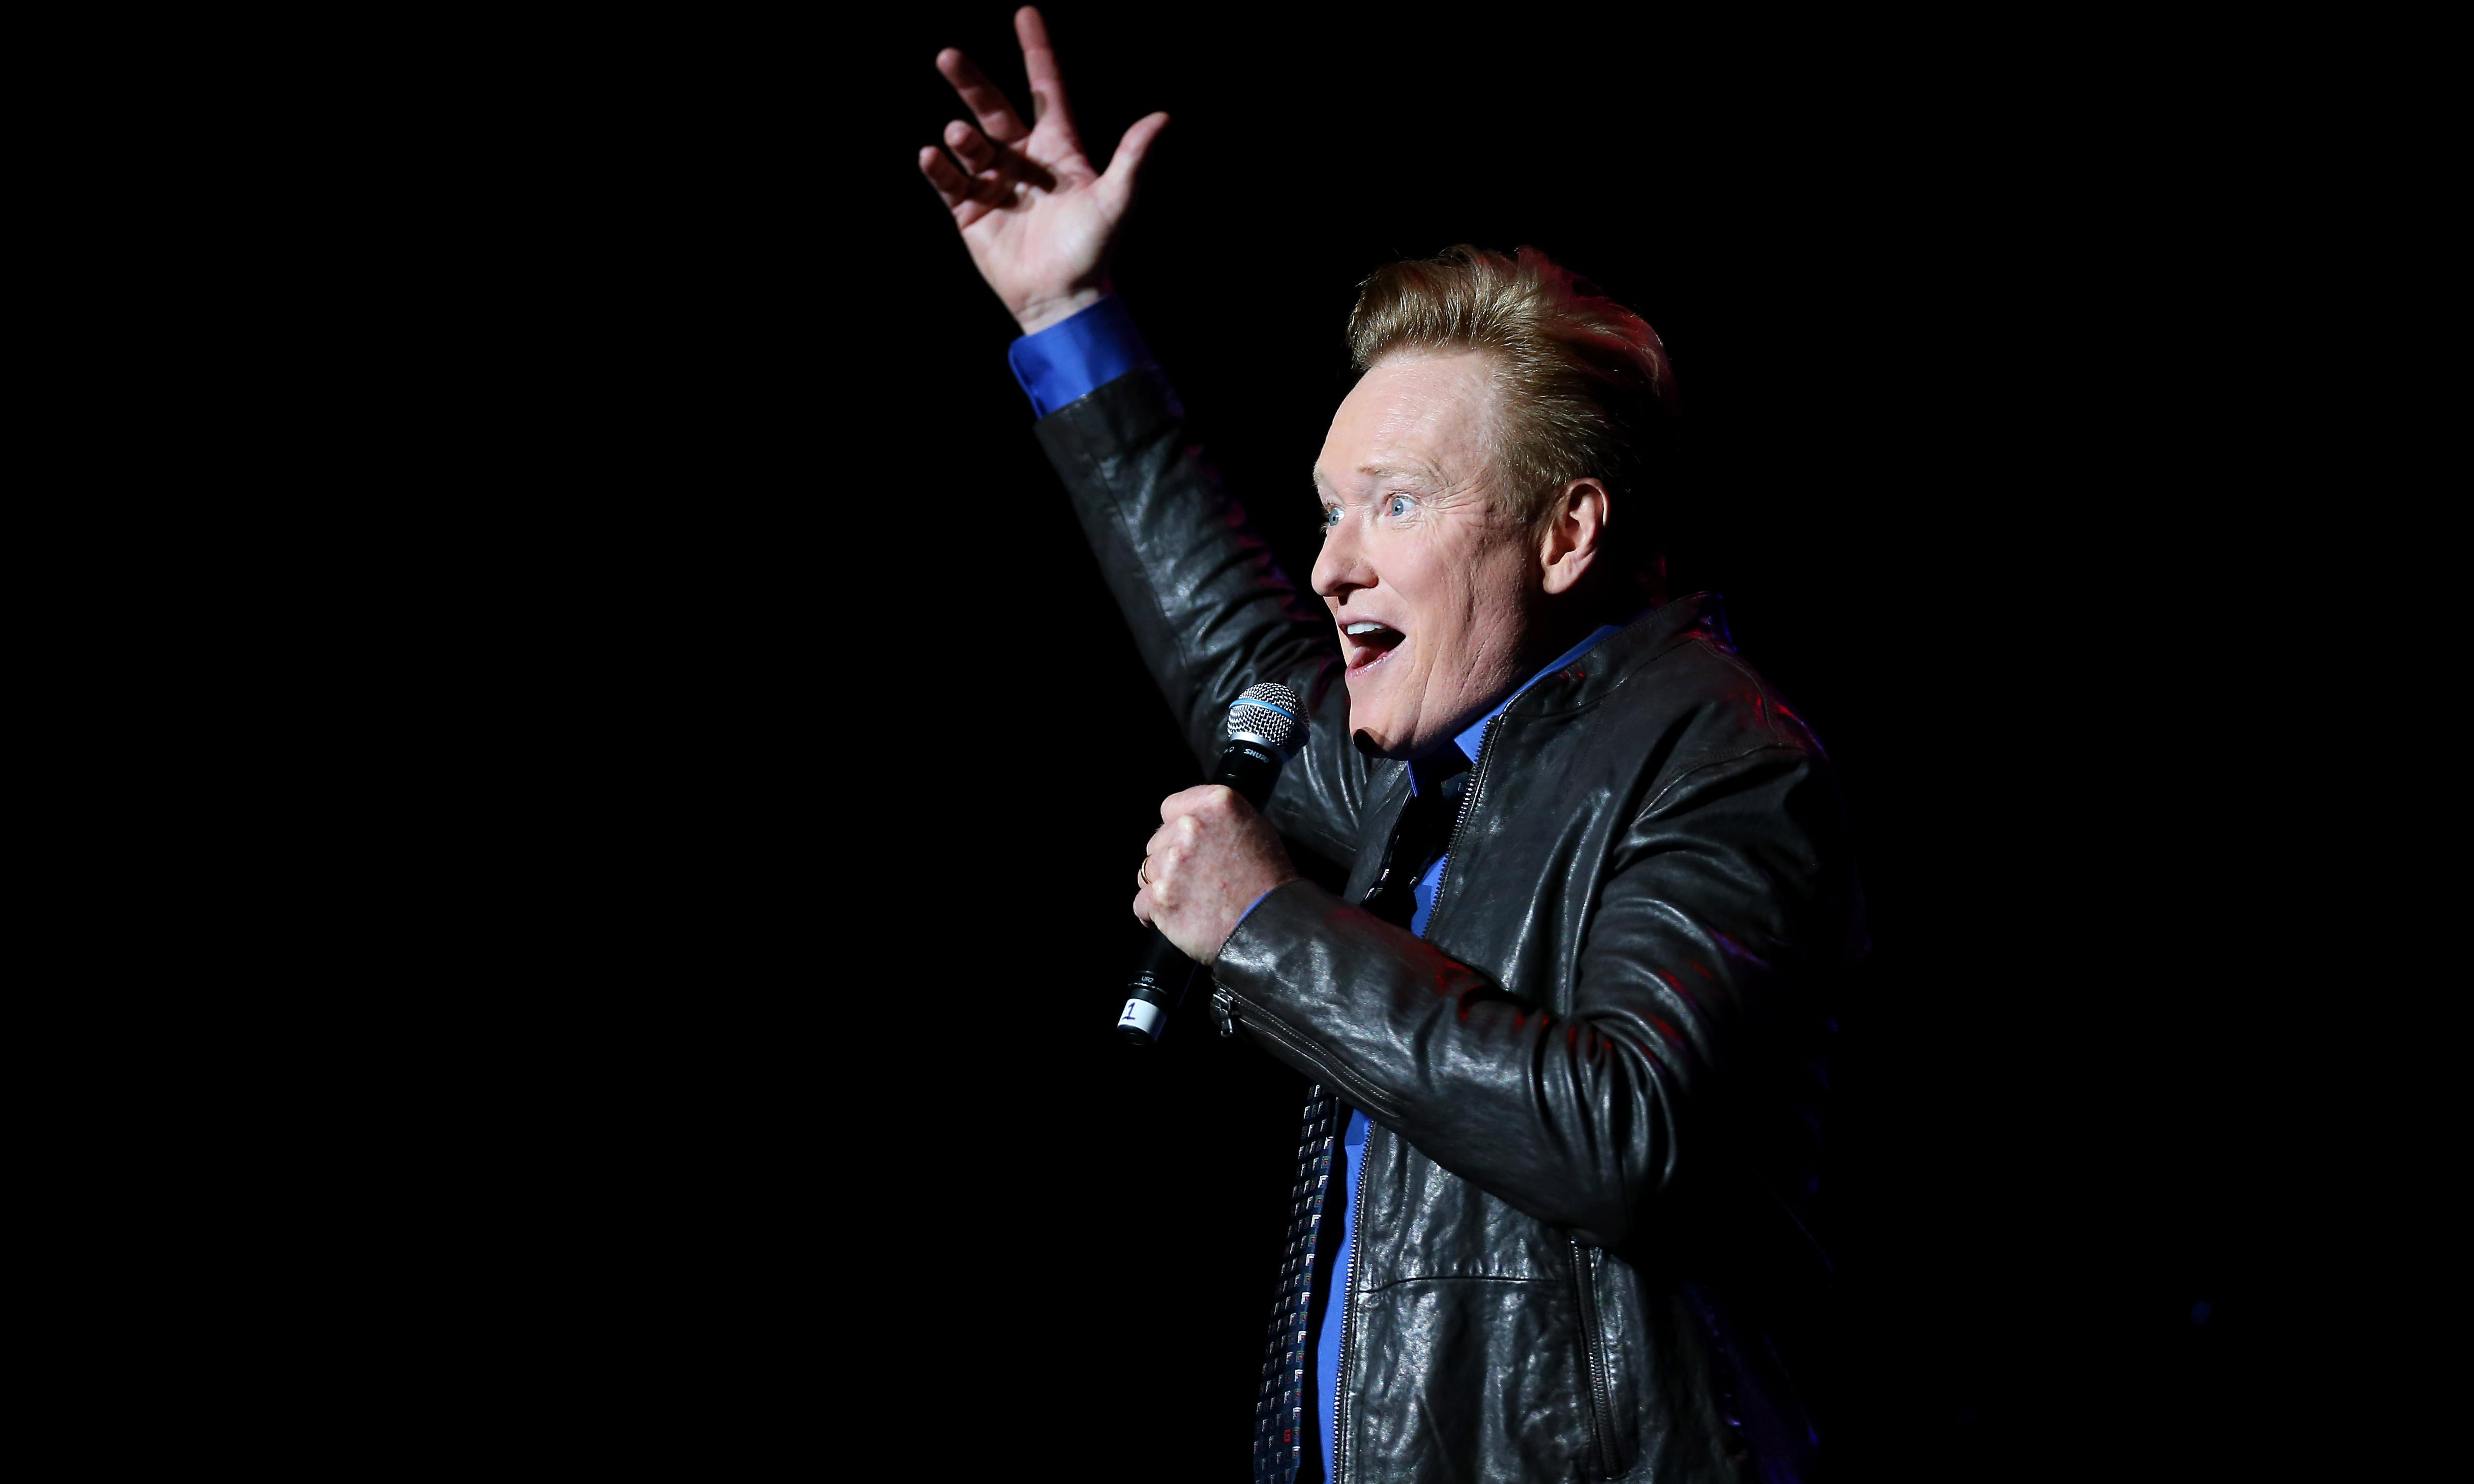 Conan O'Brien in Australia: 'No shots after midnight? Are you putting up with that?'